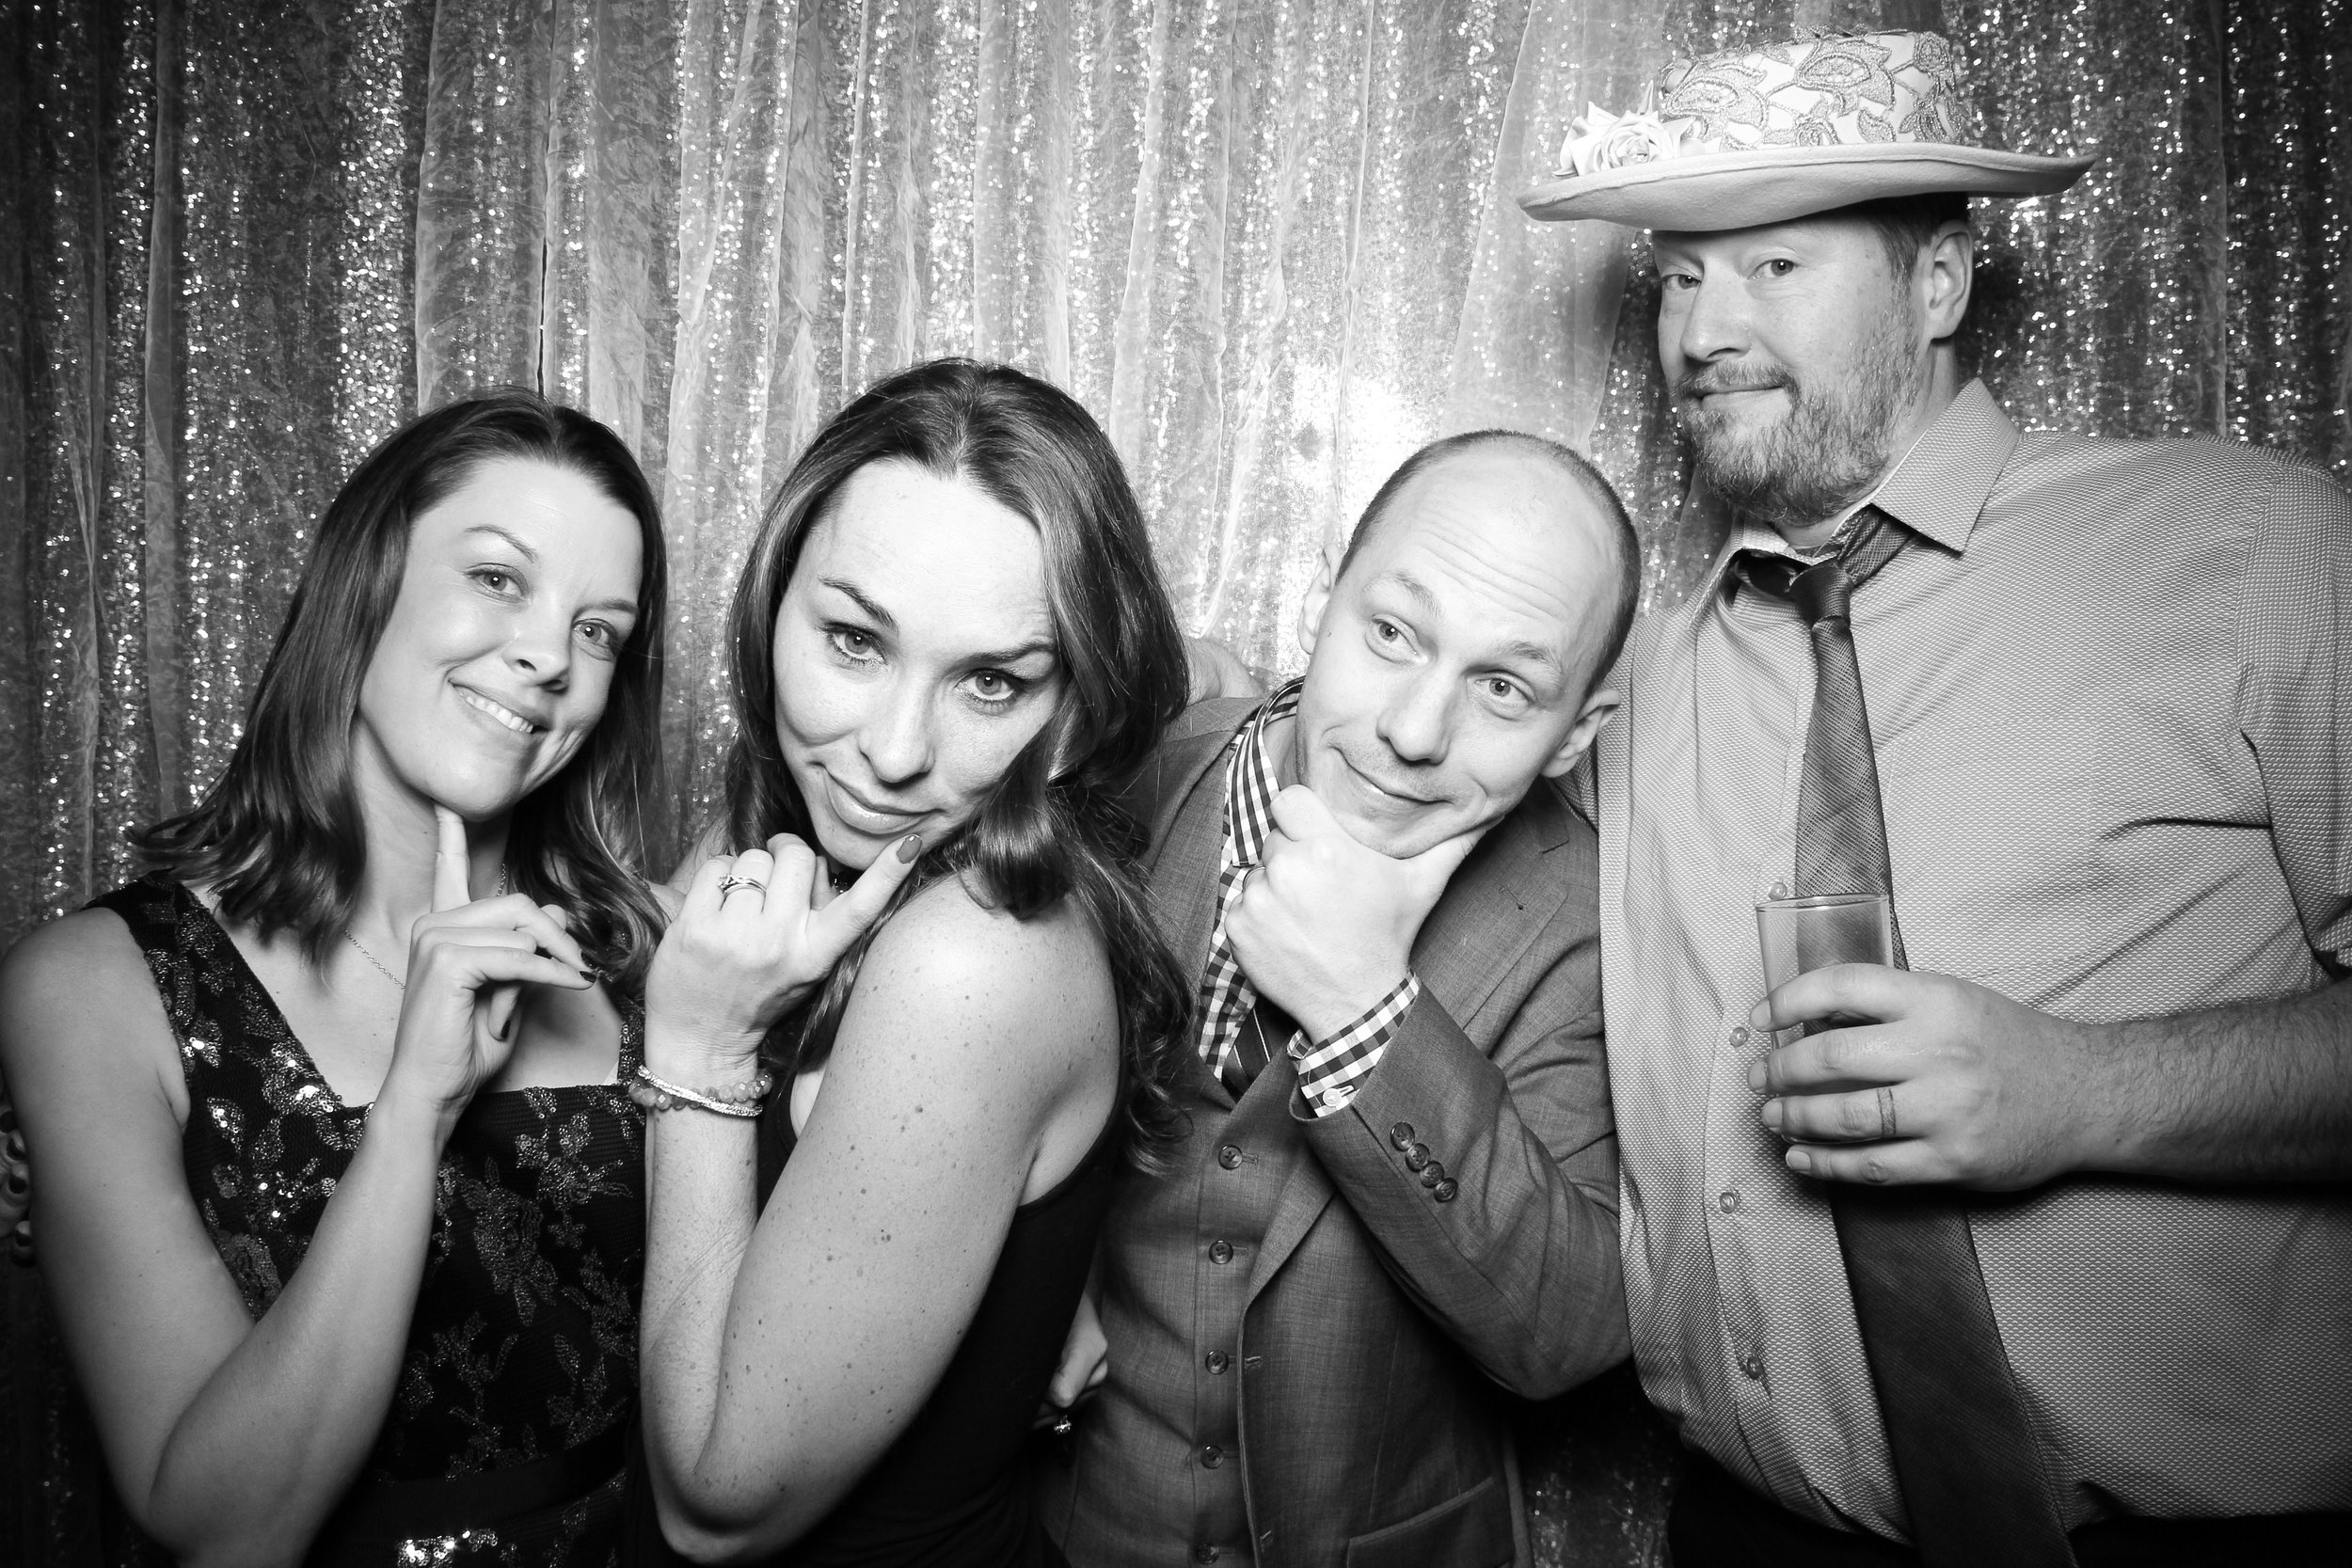 Chicago_Vintage_Photobooth_Montgomery_Club_Holiday_Party_26.jpg